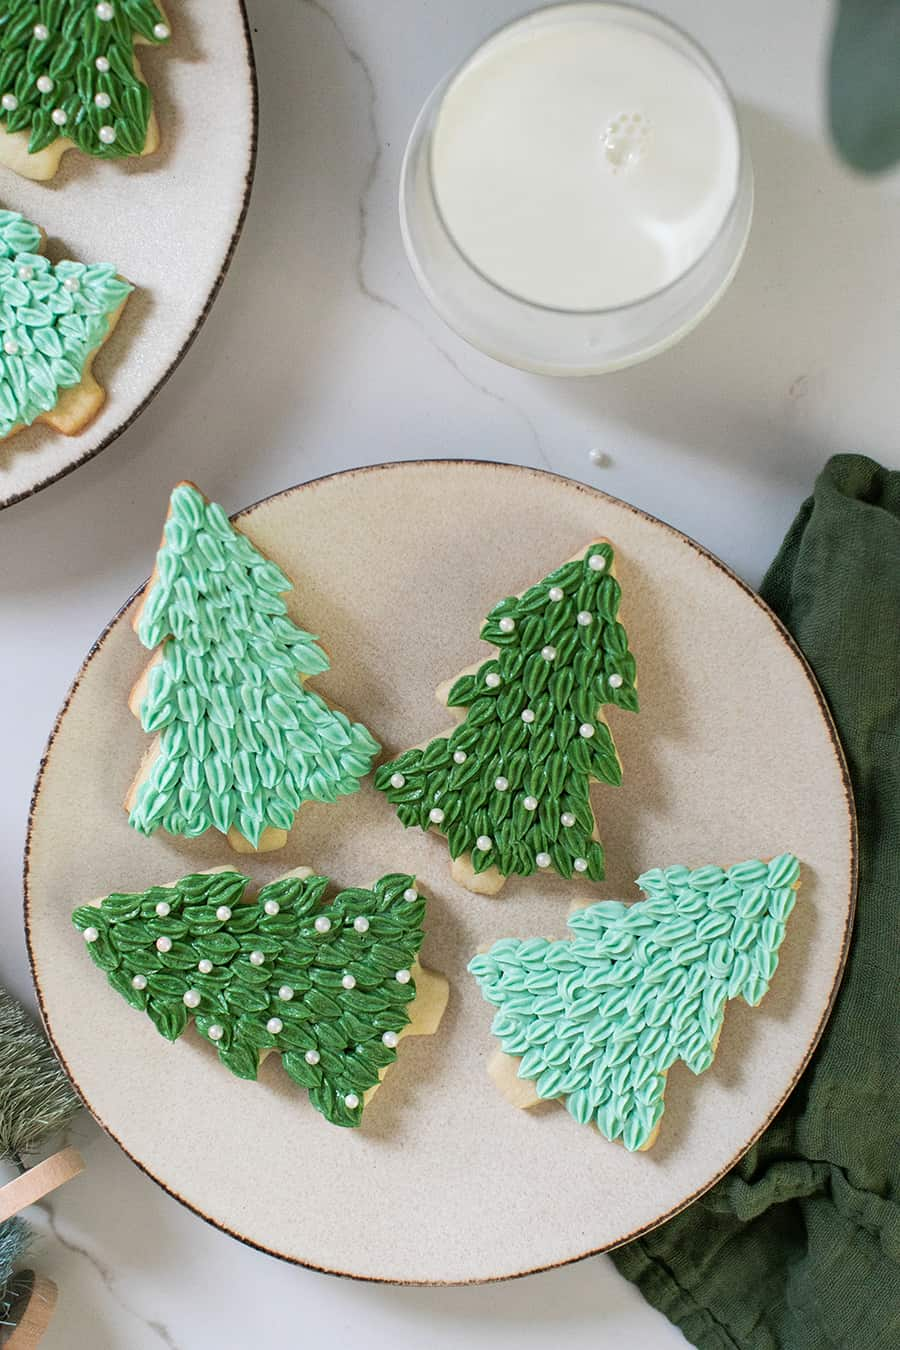 Tree Christmas sugar cookies, with green frosting and sprinkles.